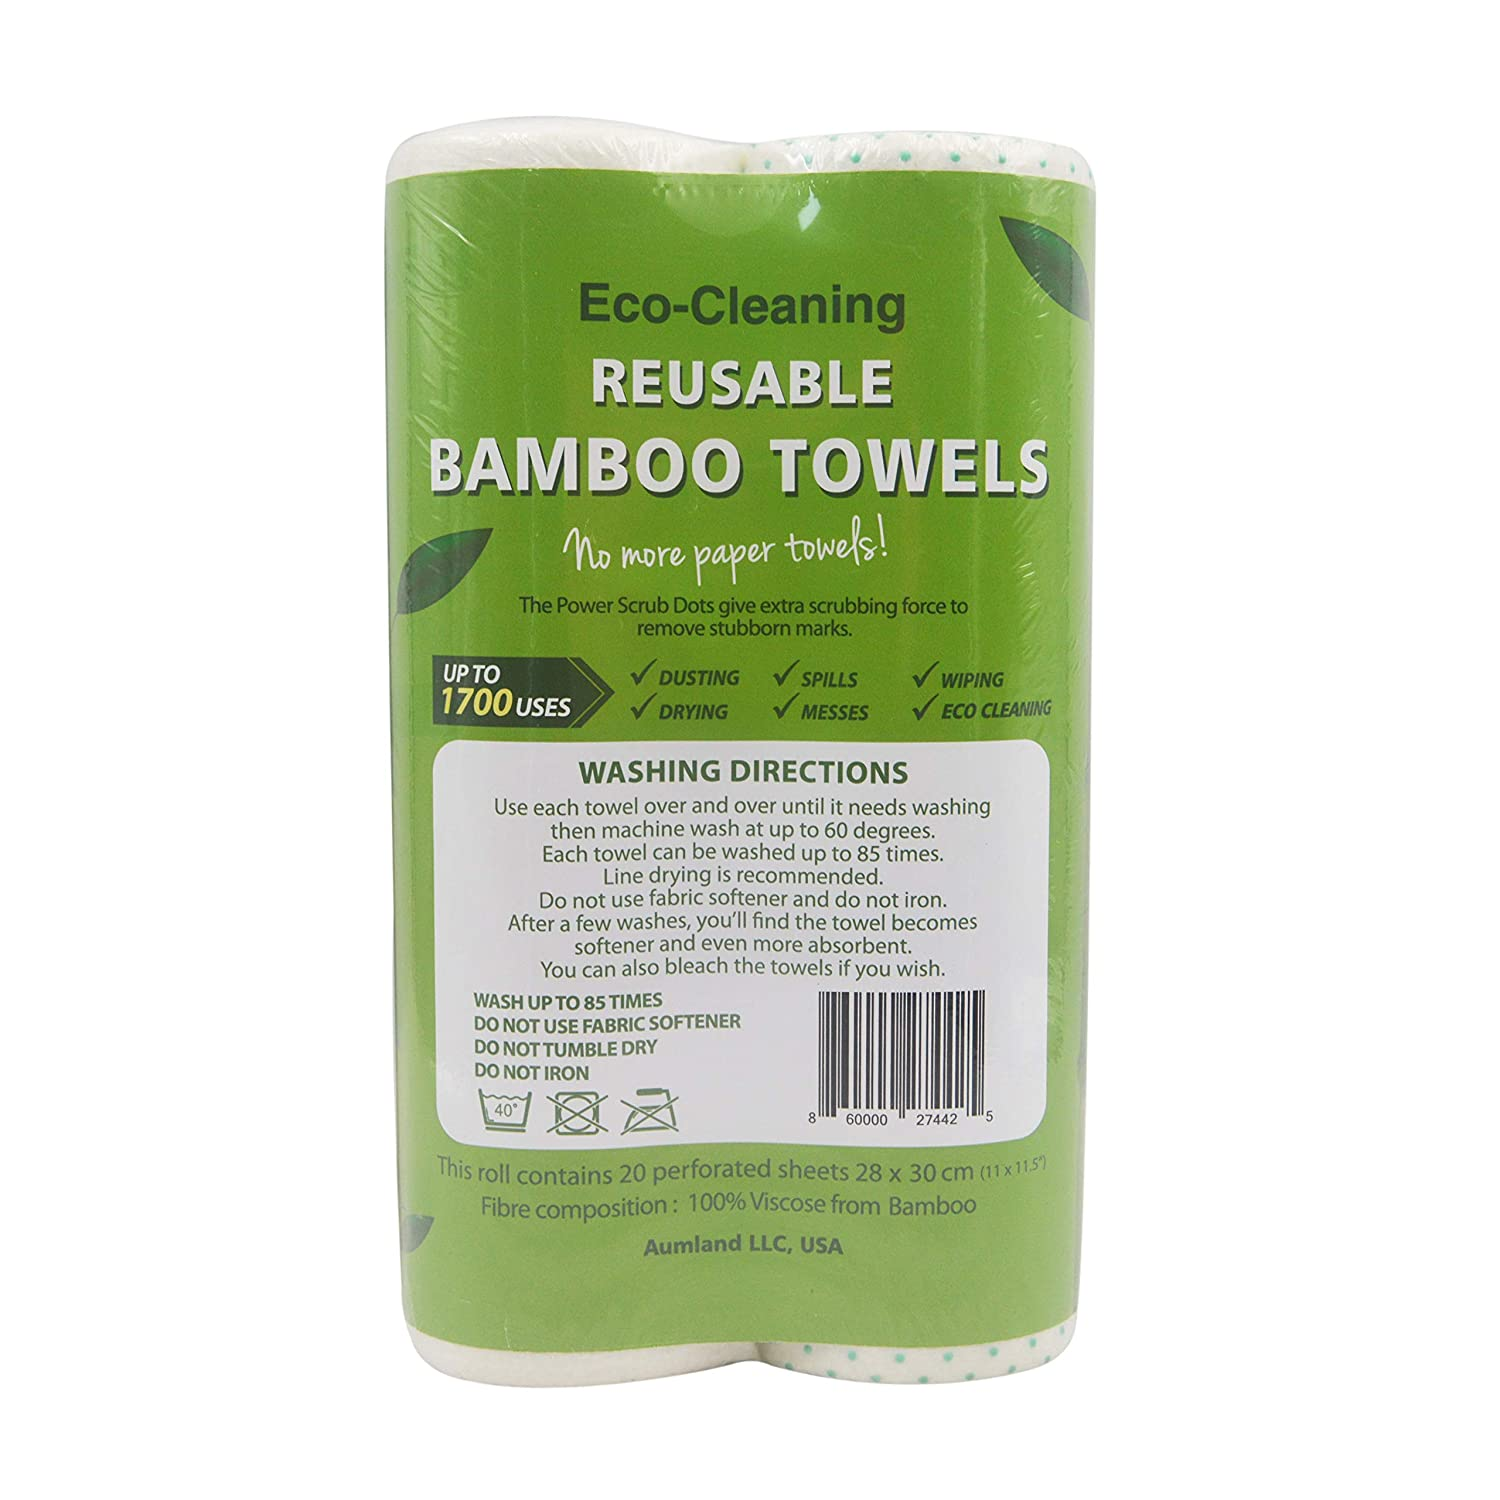 Bamboo Reusable Paper Towels | Bamboo Unpaper Towels | Machine Washable Paper Towel Roll-40 Sheets (2 Rolls) Each Roll Replaces 6 Month of Regular Paper Towels